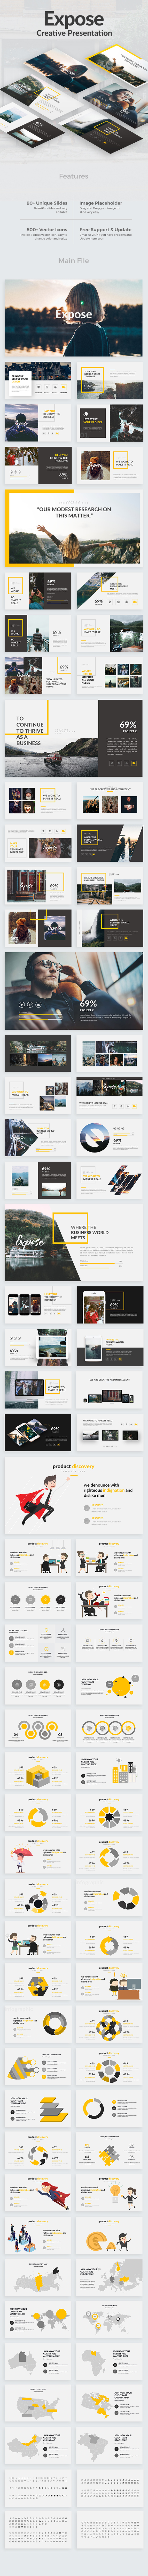 GraphicRiver Expose Creative Google Slide Template 20986319